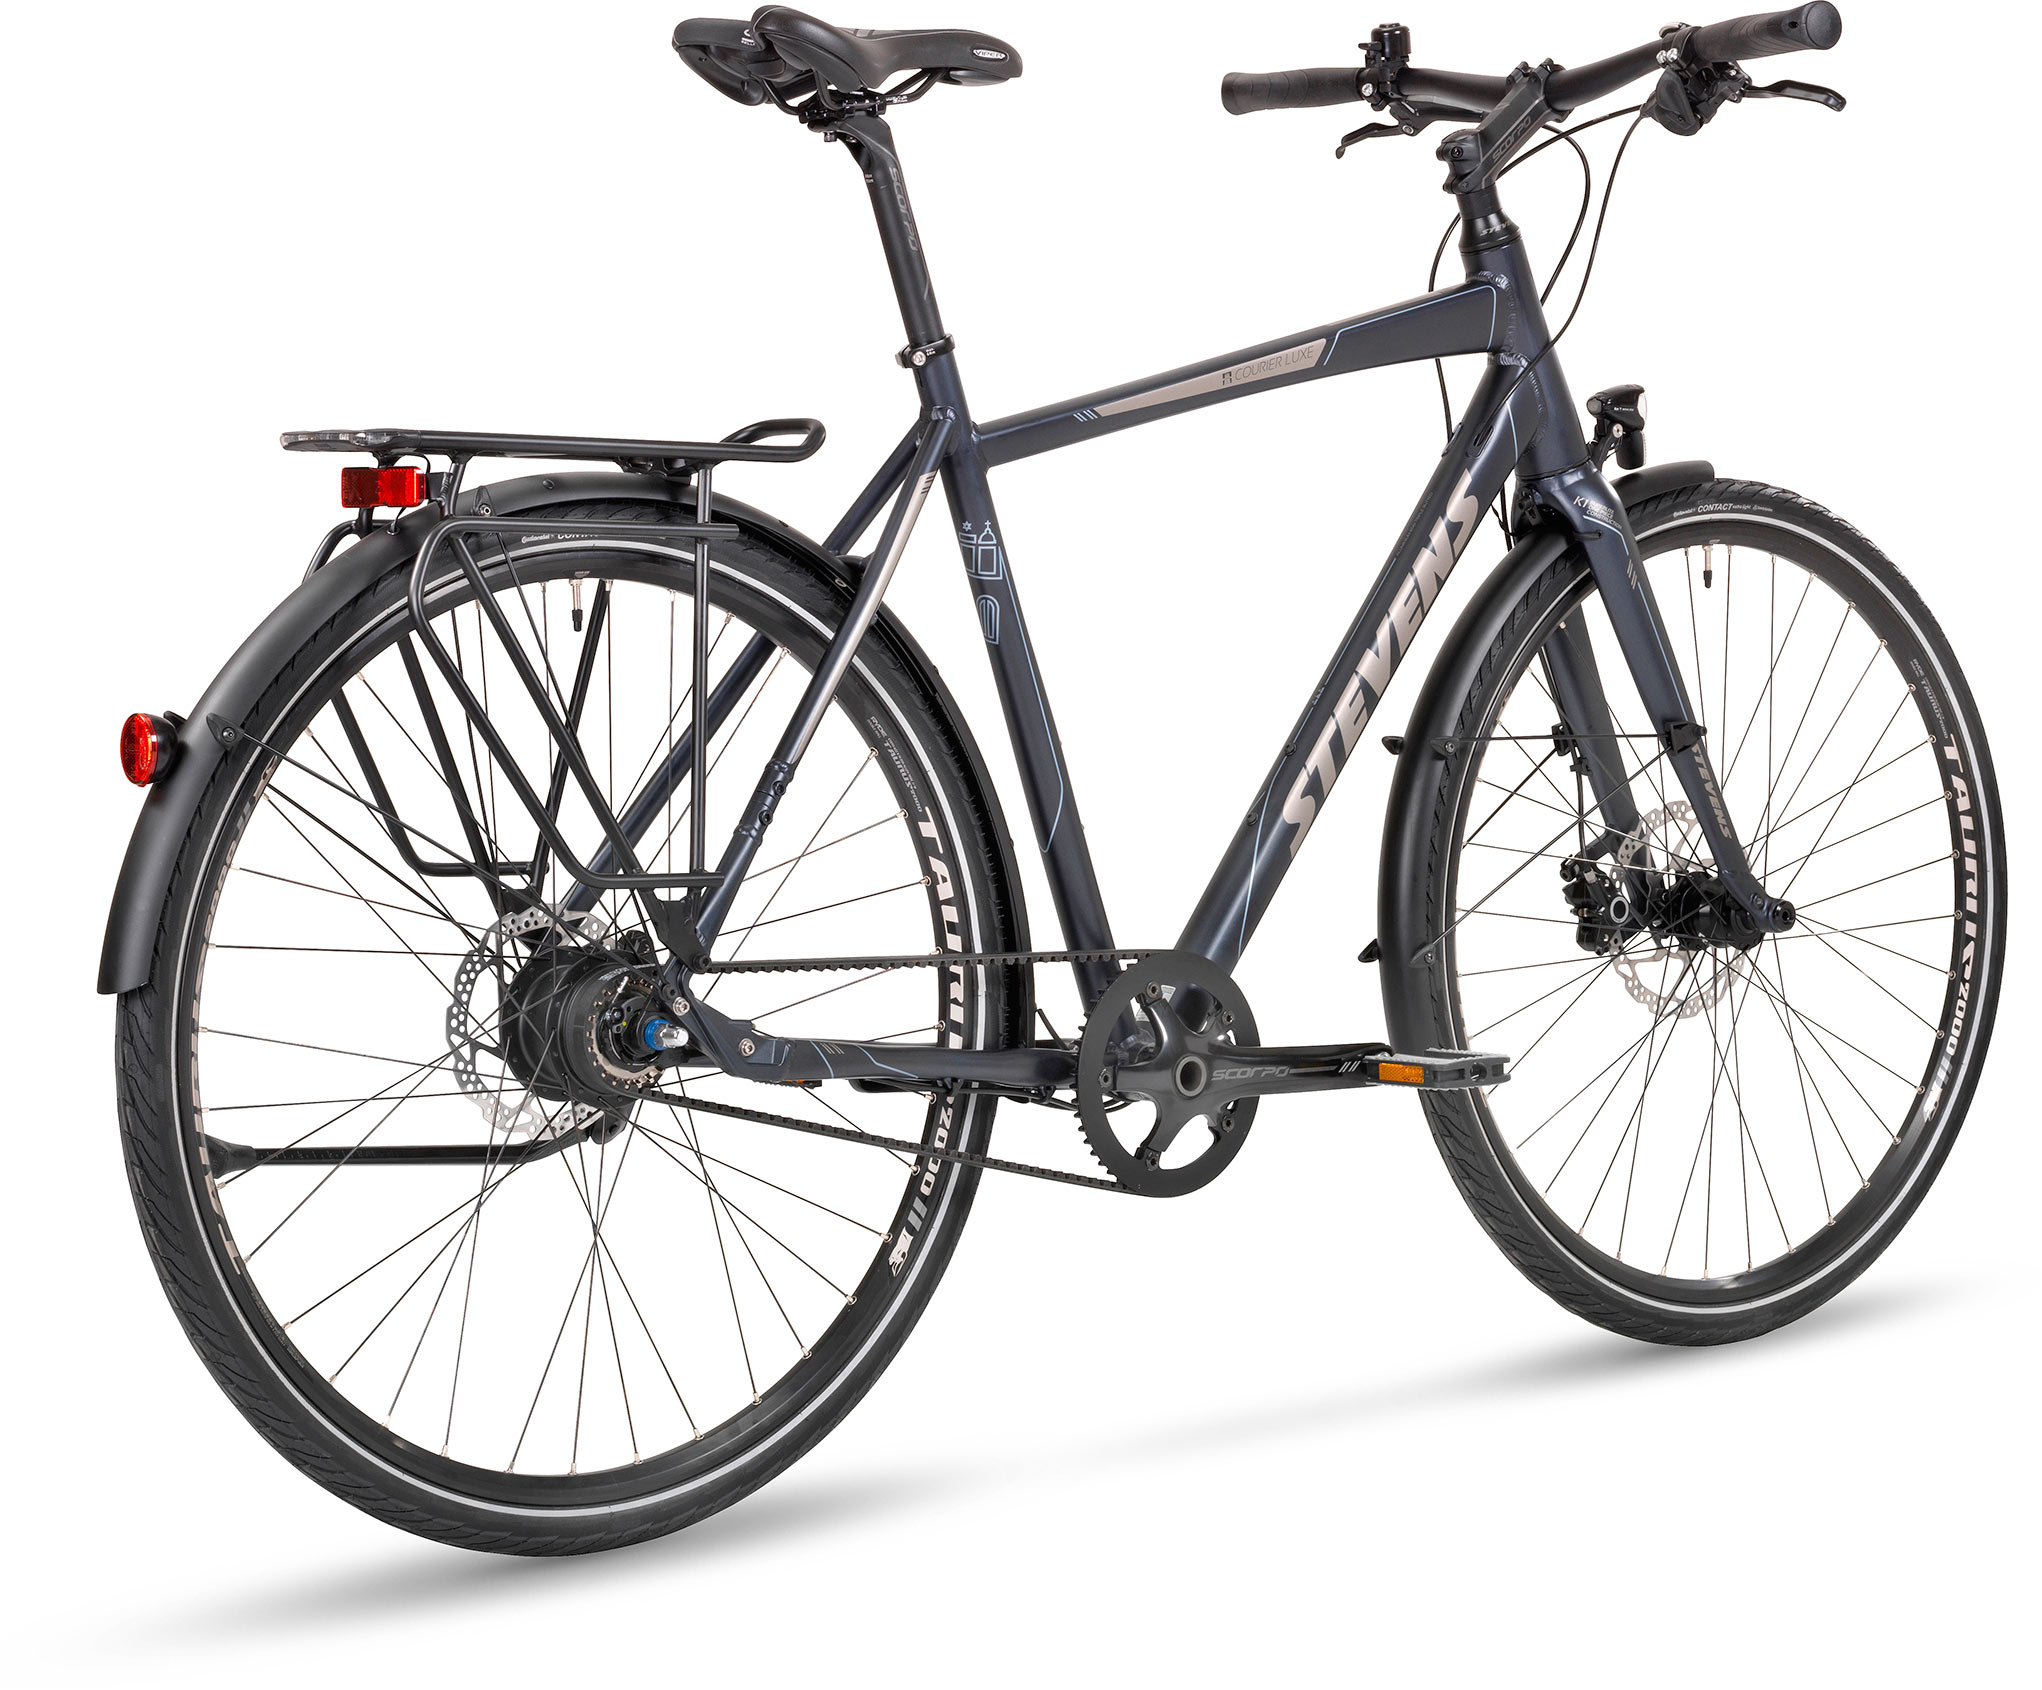 Courier Luxe Gent Stevens Bikes 2016